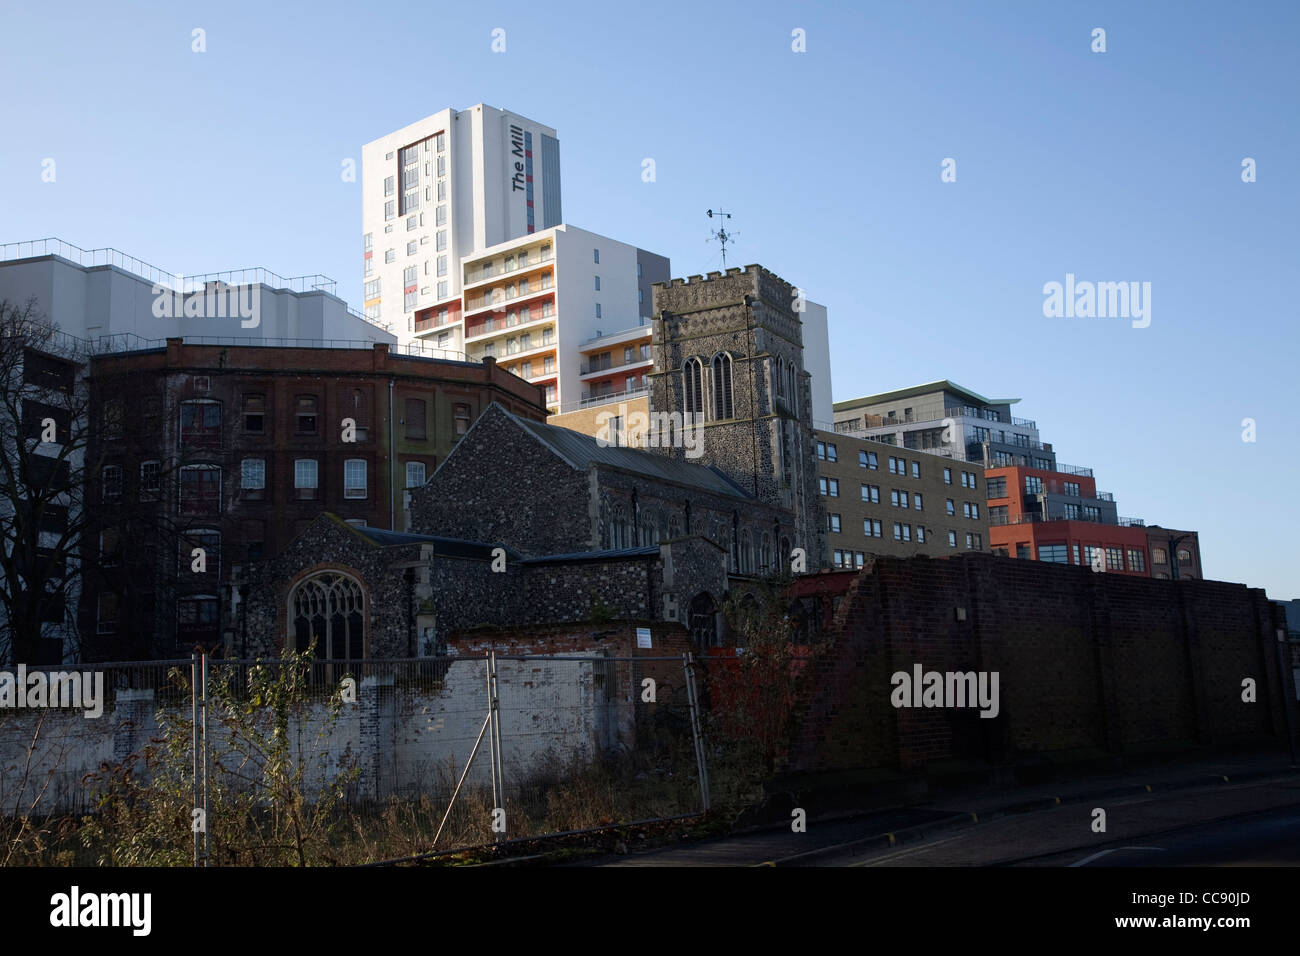 Zone in transition old and new buildings Ipswich Wet Dock area - Stock Image